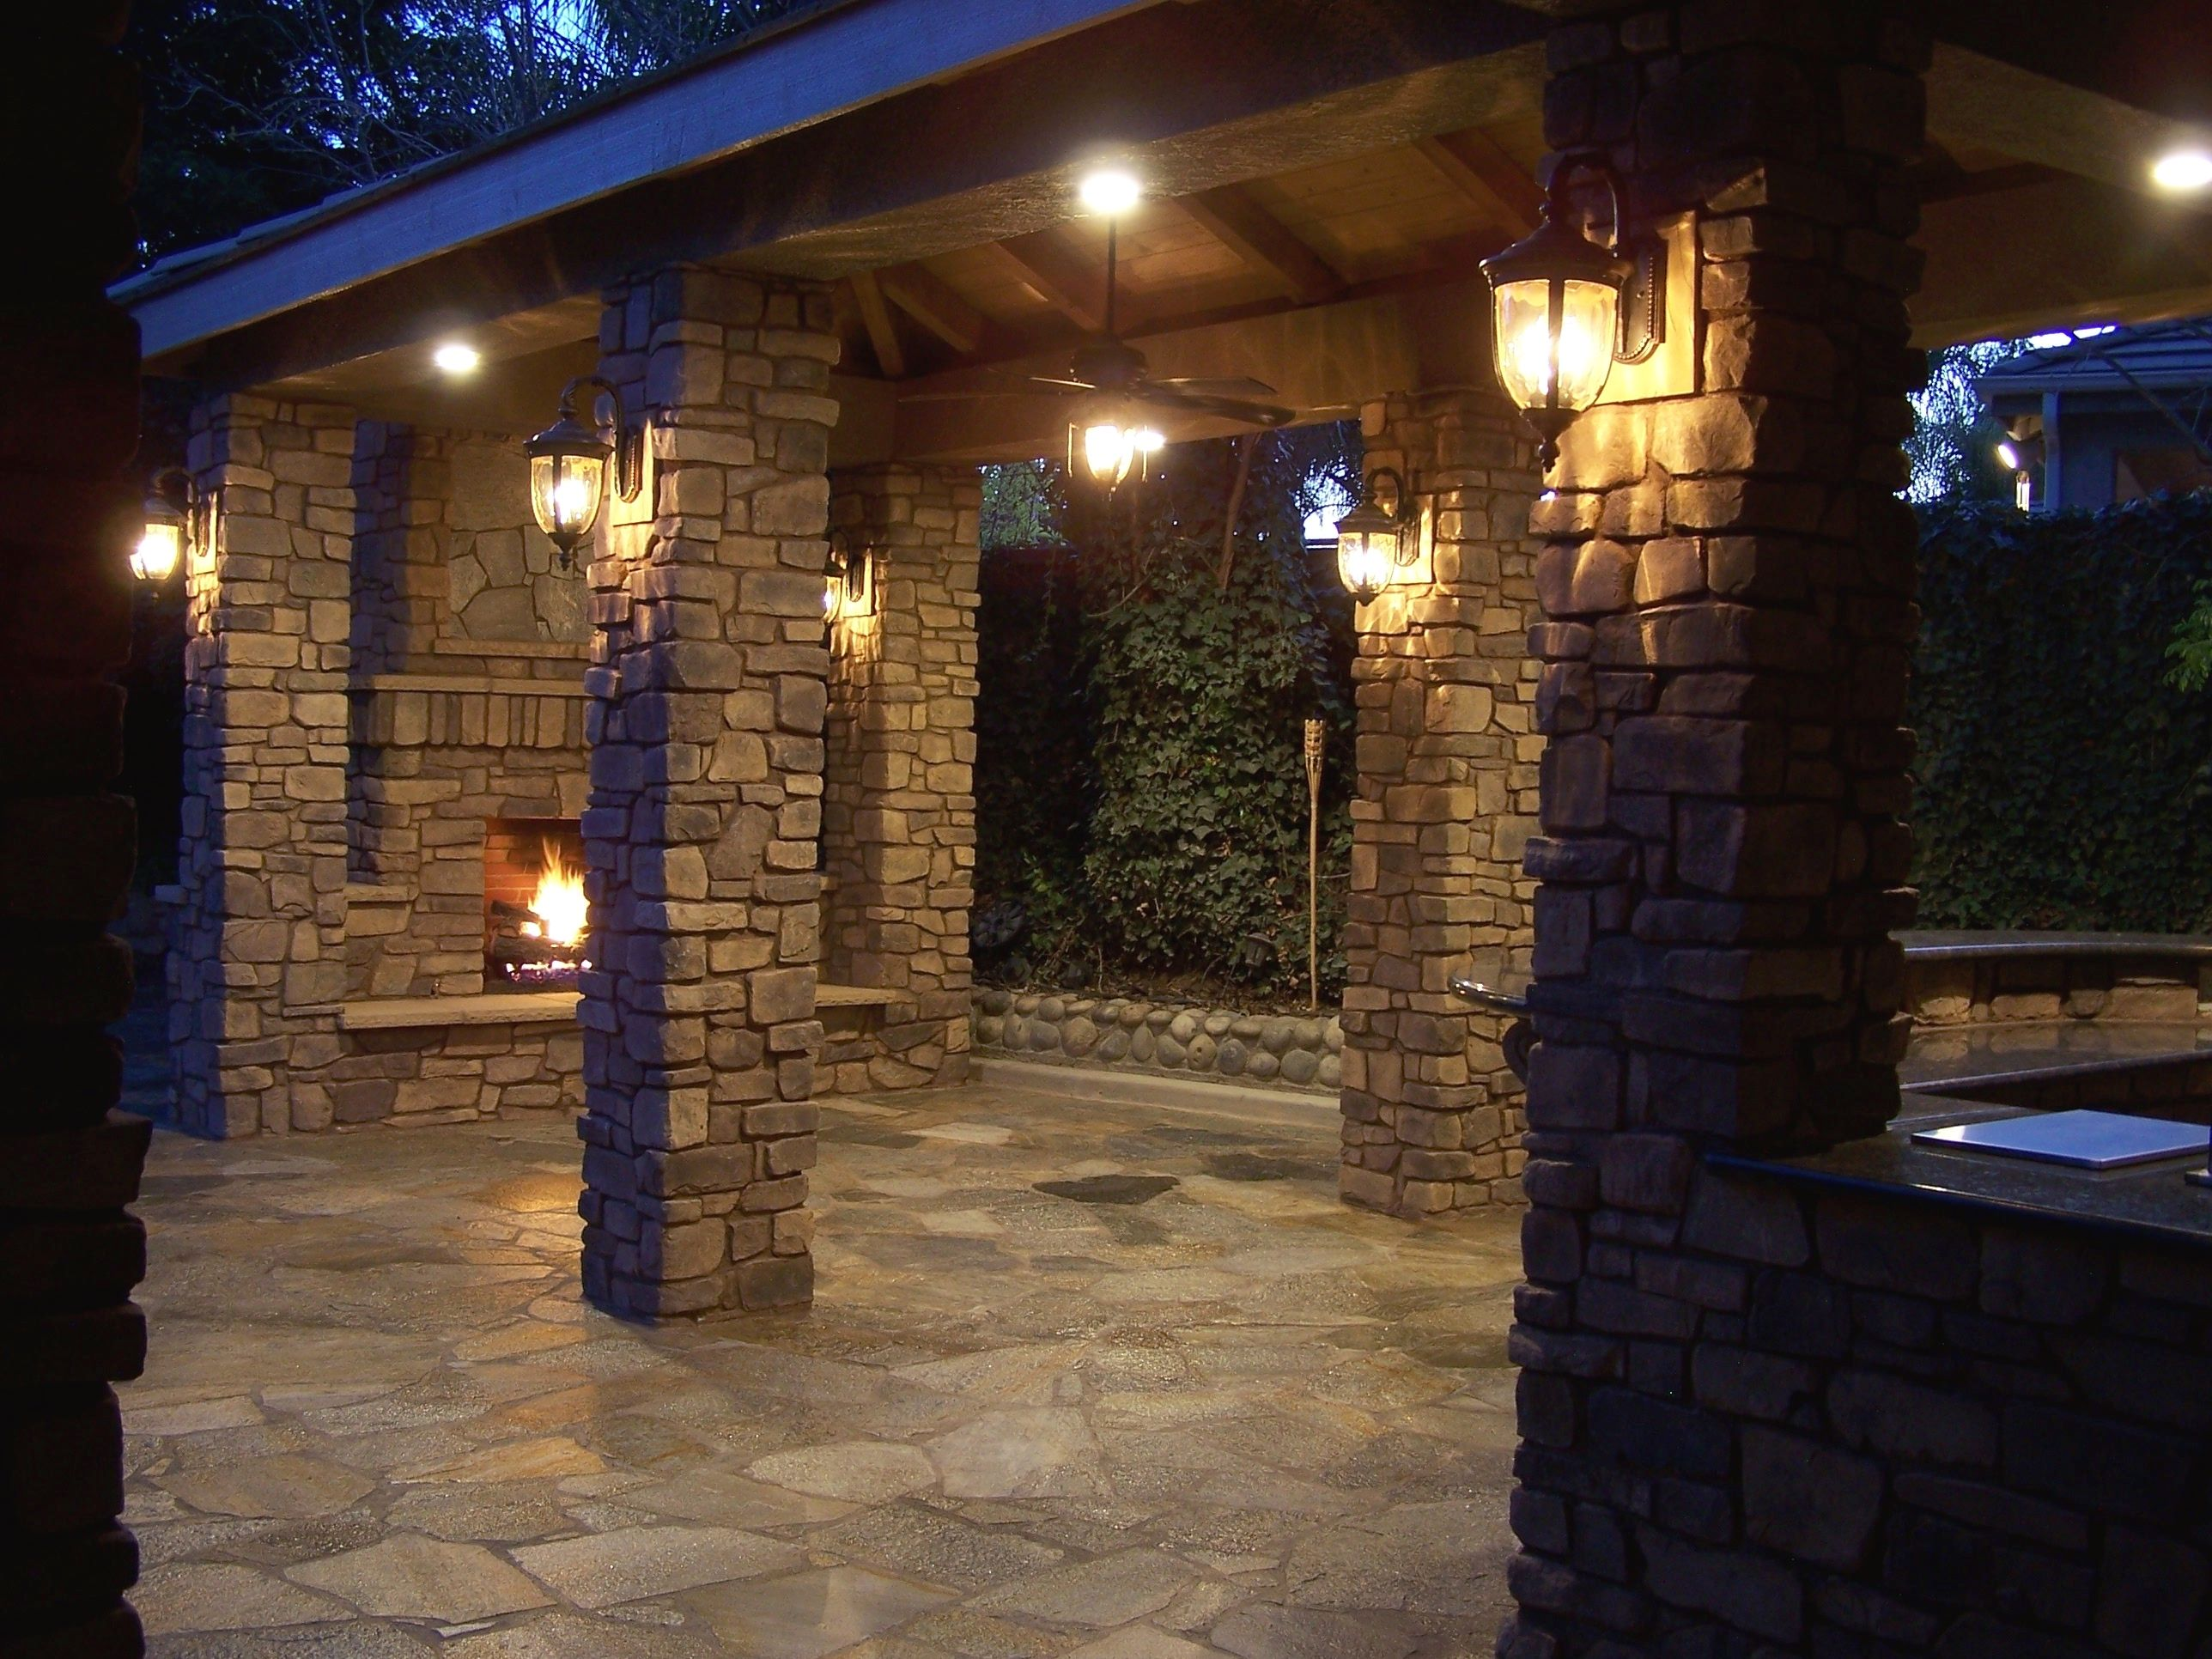 outdoor living at its finest outdoor stone fireplace stone columns